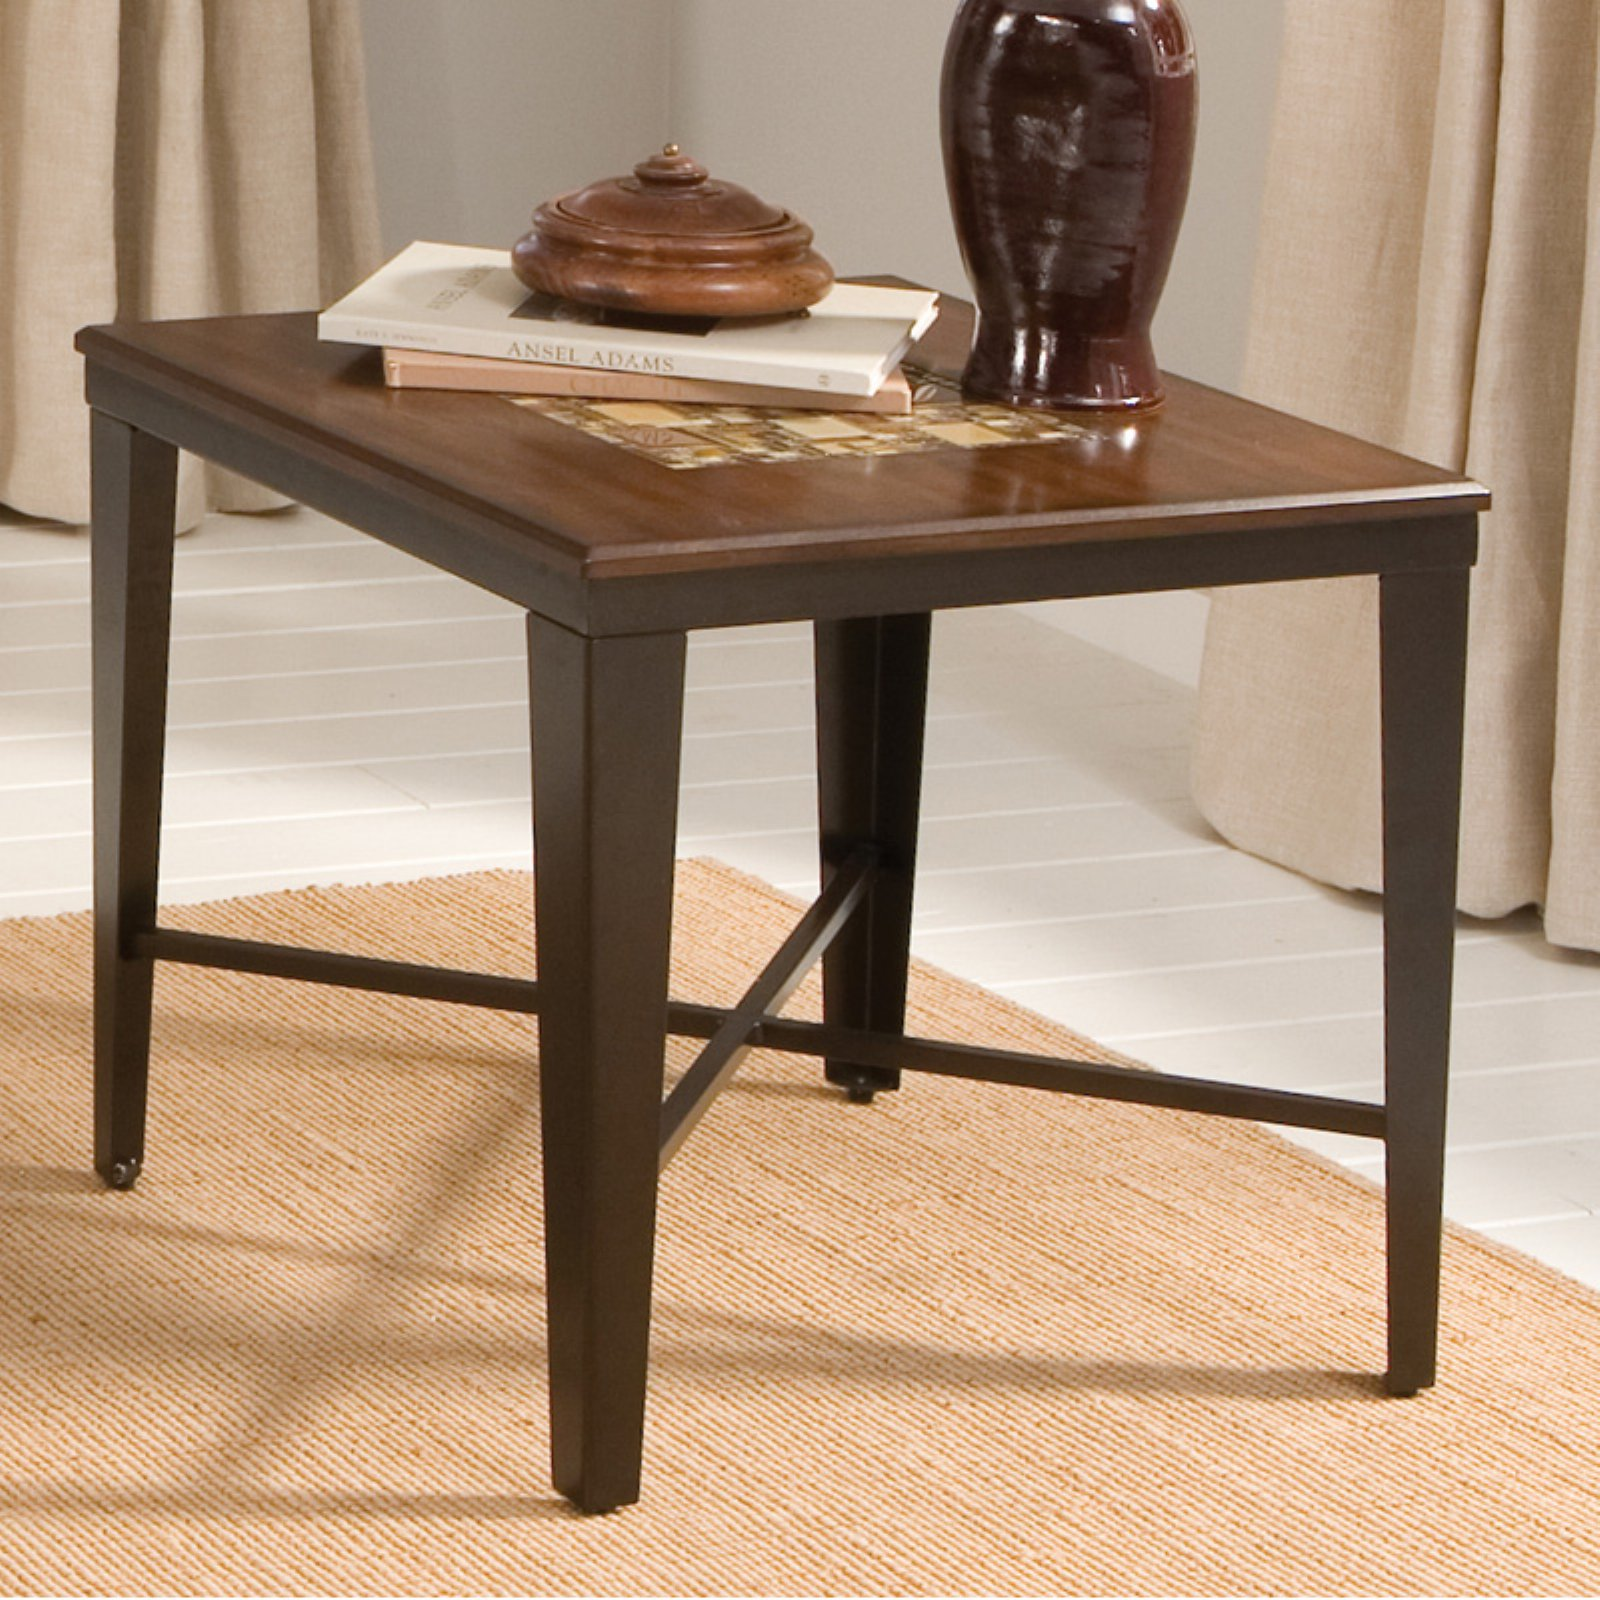 Steve Silver Emeril Square Wood And Glass Tile Top End Table